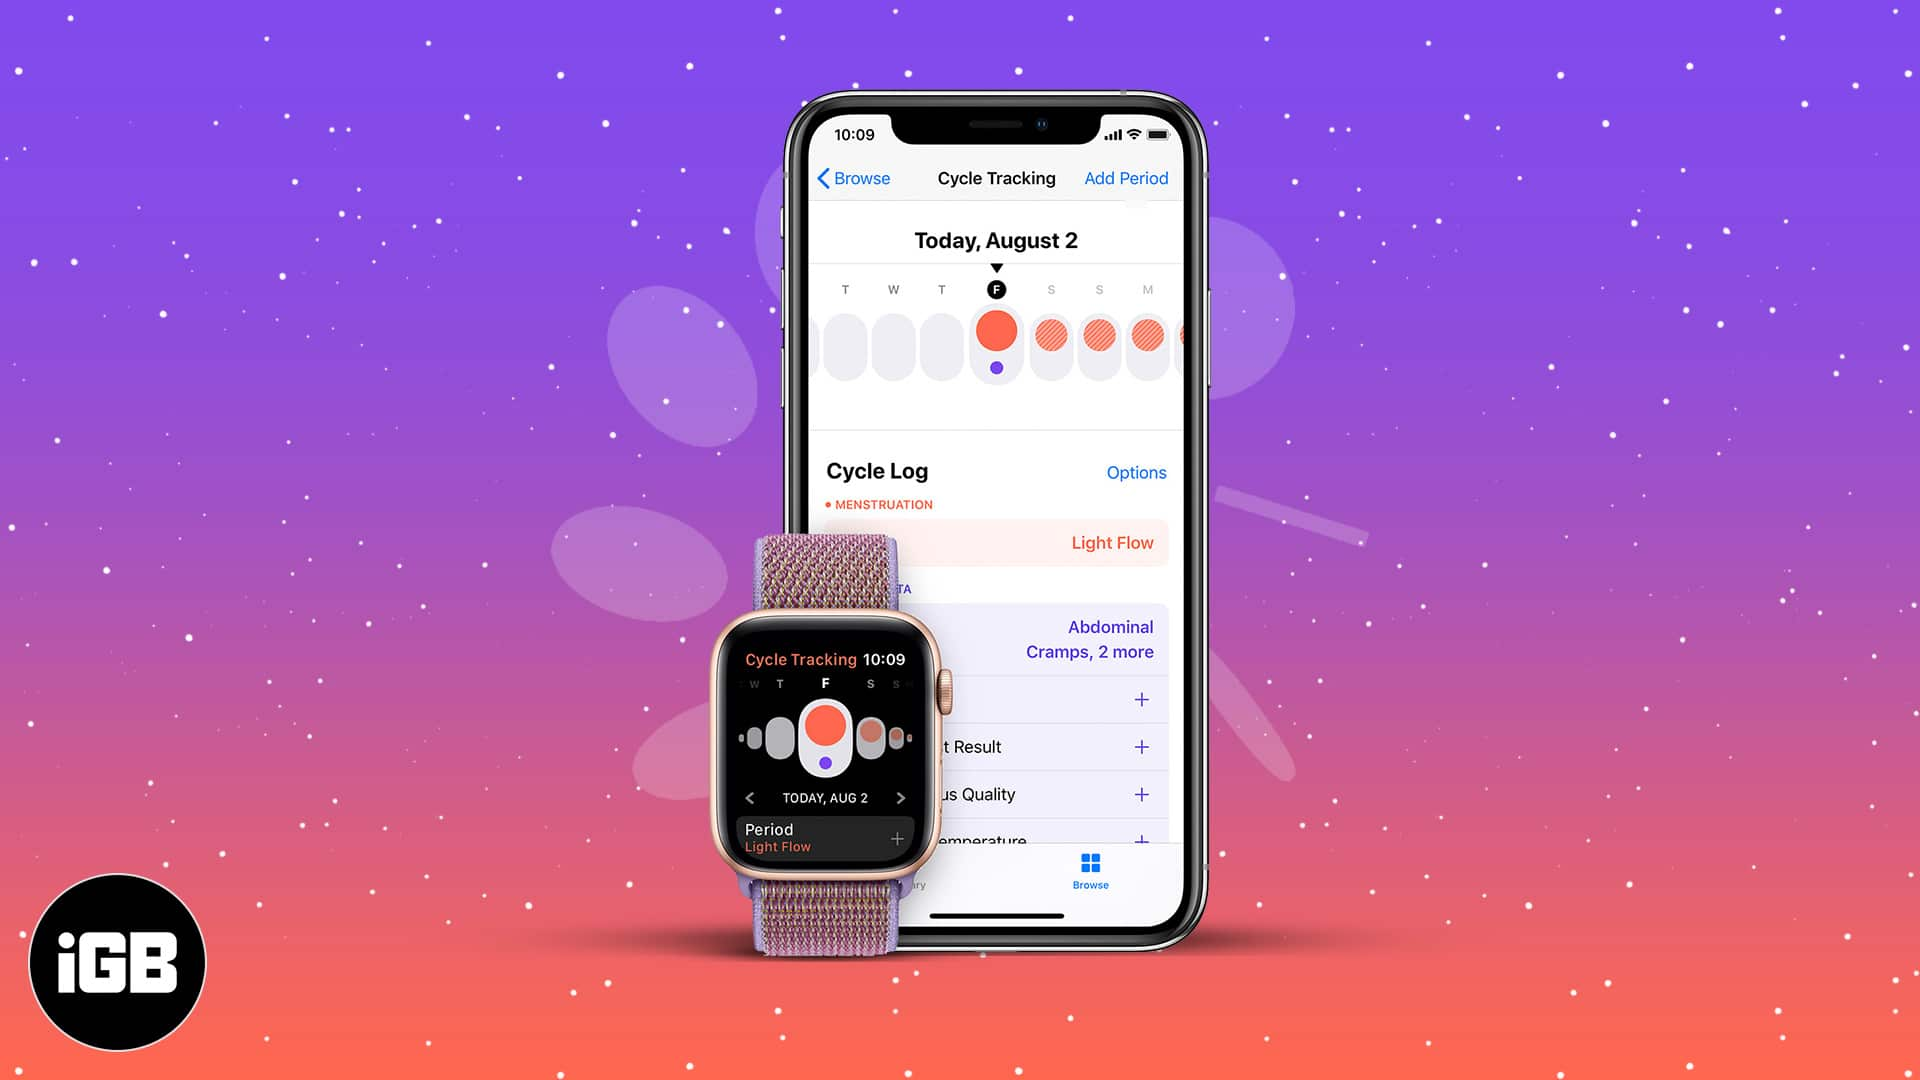 How to use Cycle Tracking on Apple Watch and iPhone